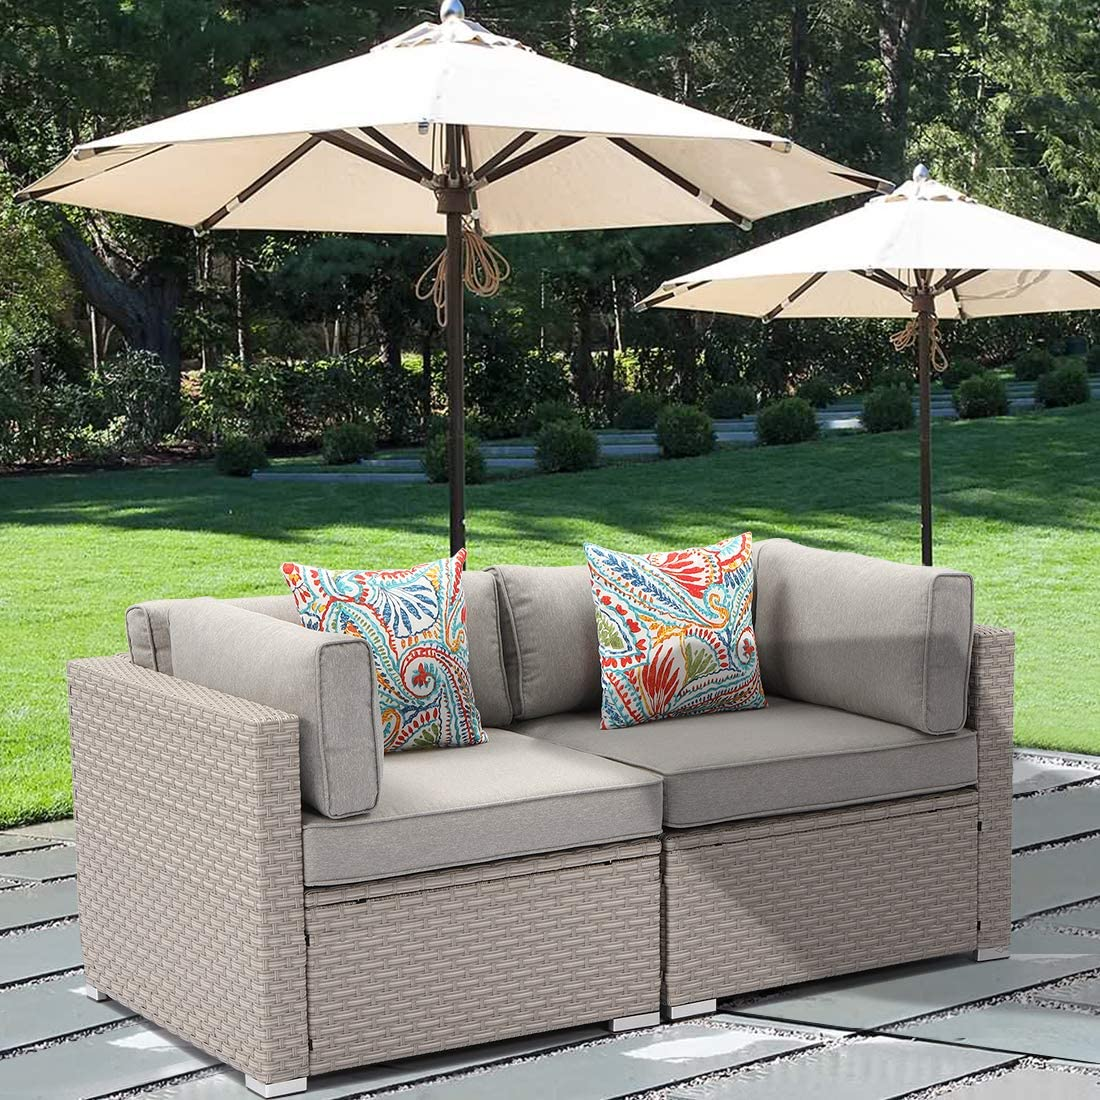 HOMPUS 2-Piece Outdoor Furniture All Weather Patio Handwoven Loveseat w Warm Gray Seat Cushions, 2 Bohemian Flower Pillows for Garden, Pool, Backyard